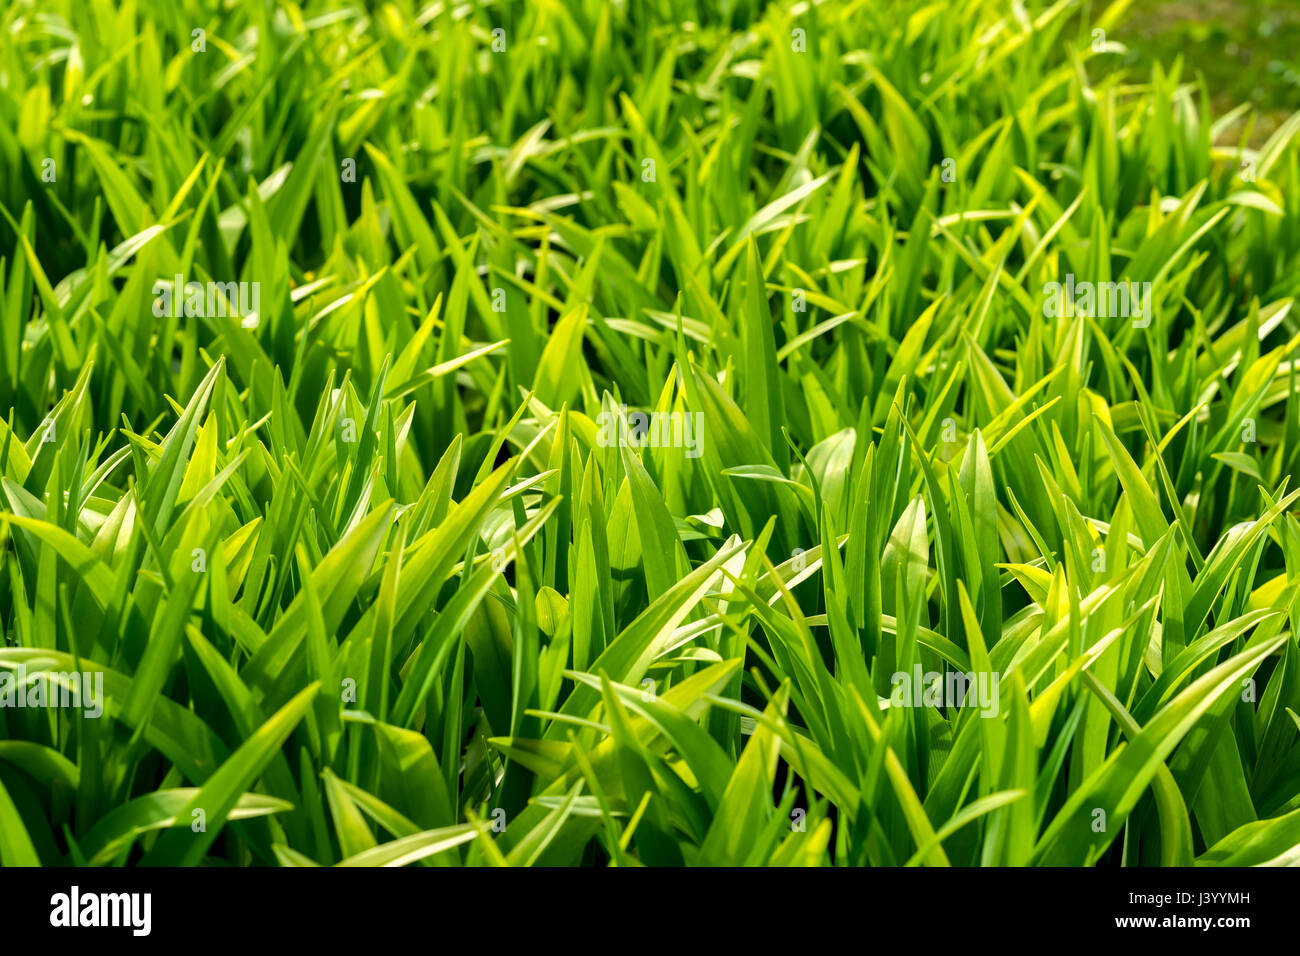 Young spring grass close up light green shade called greenery young spring grass close up light green shade called greenery symbol of new beginnings modern natural wallpaper for all occasions copy space buycottarizona Choice Image